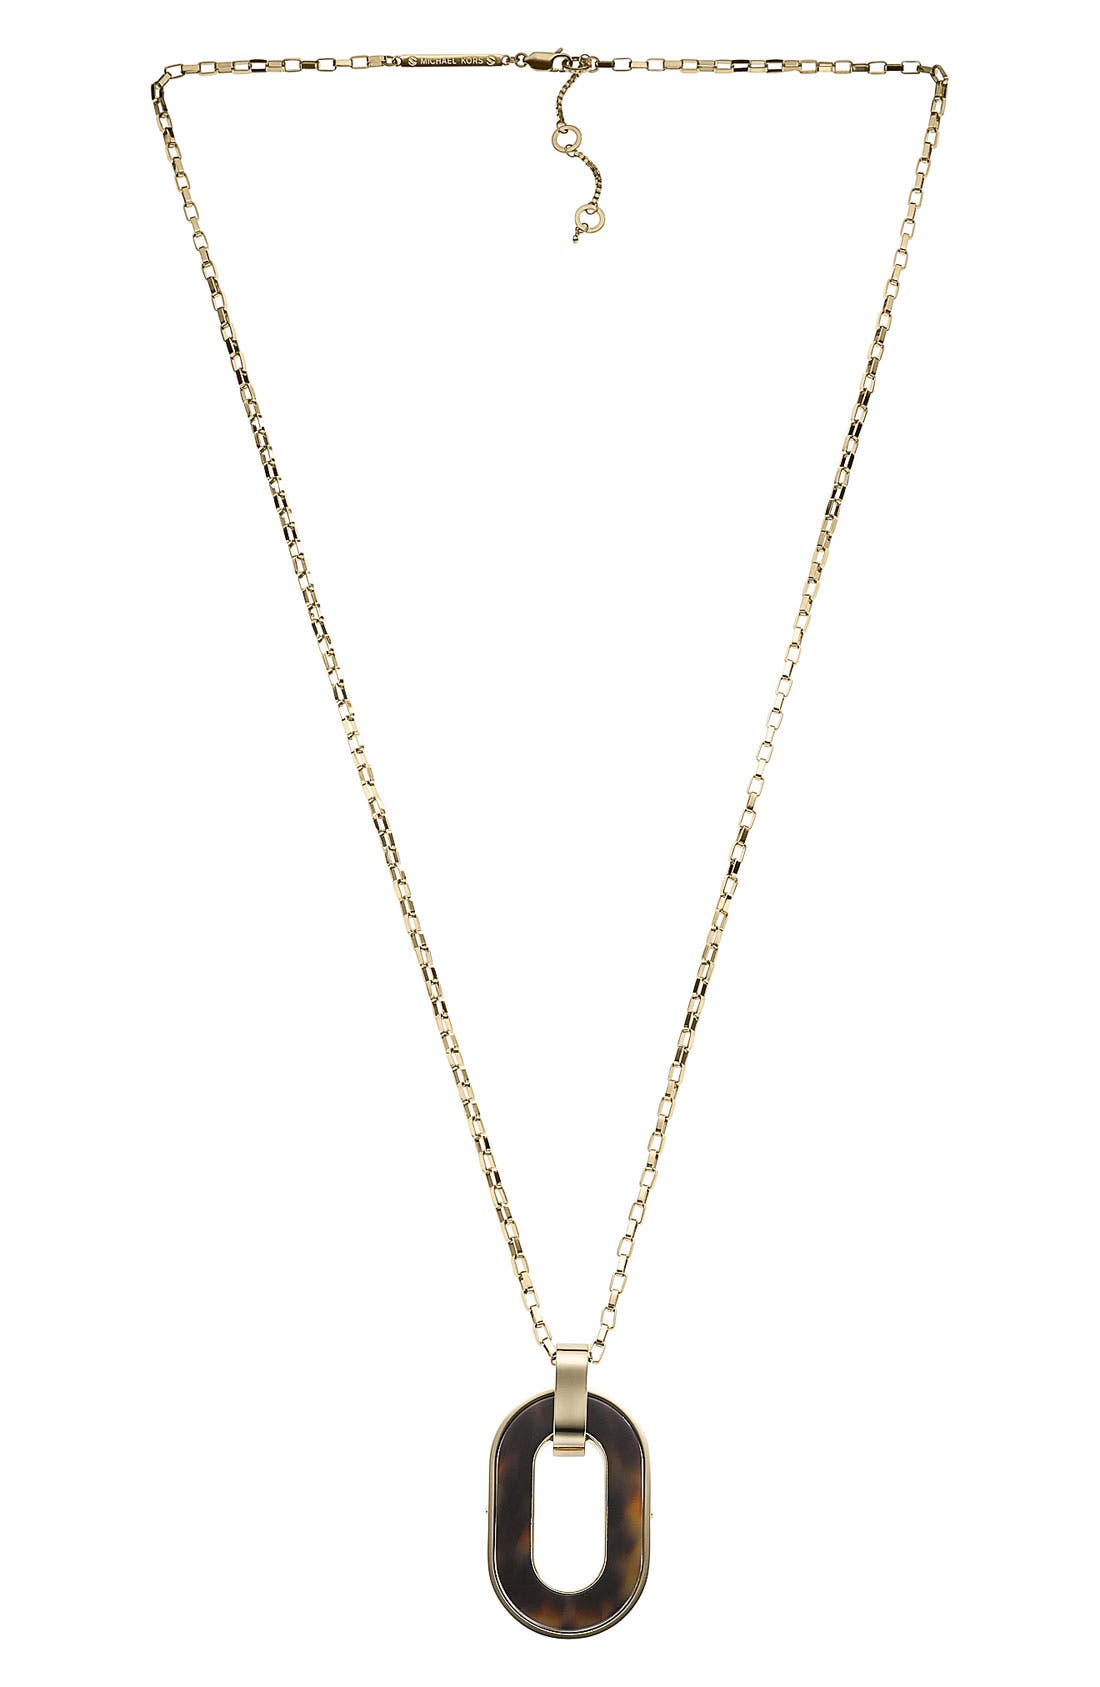 Main Image - Michael Kors 'Jet Set' Long Pendant Necklace